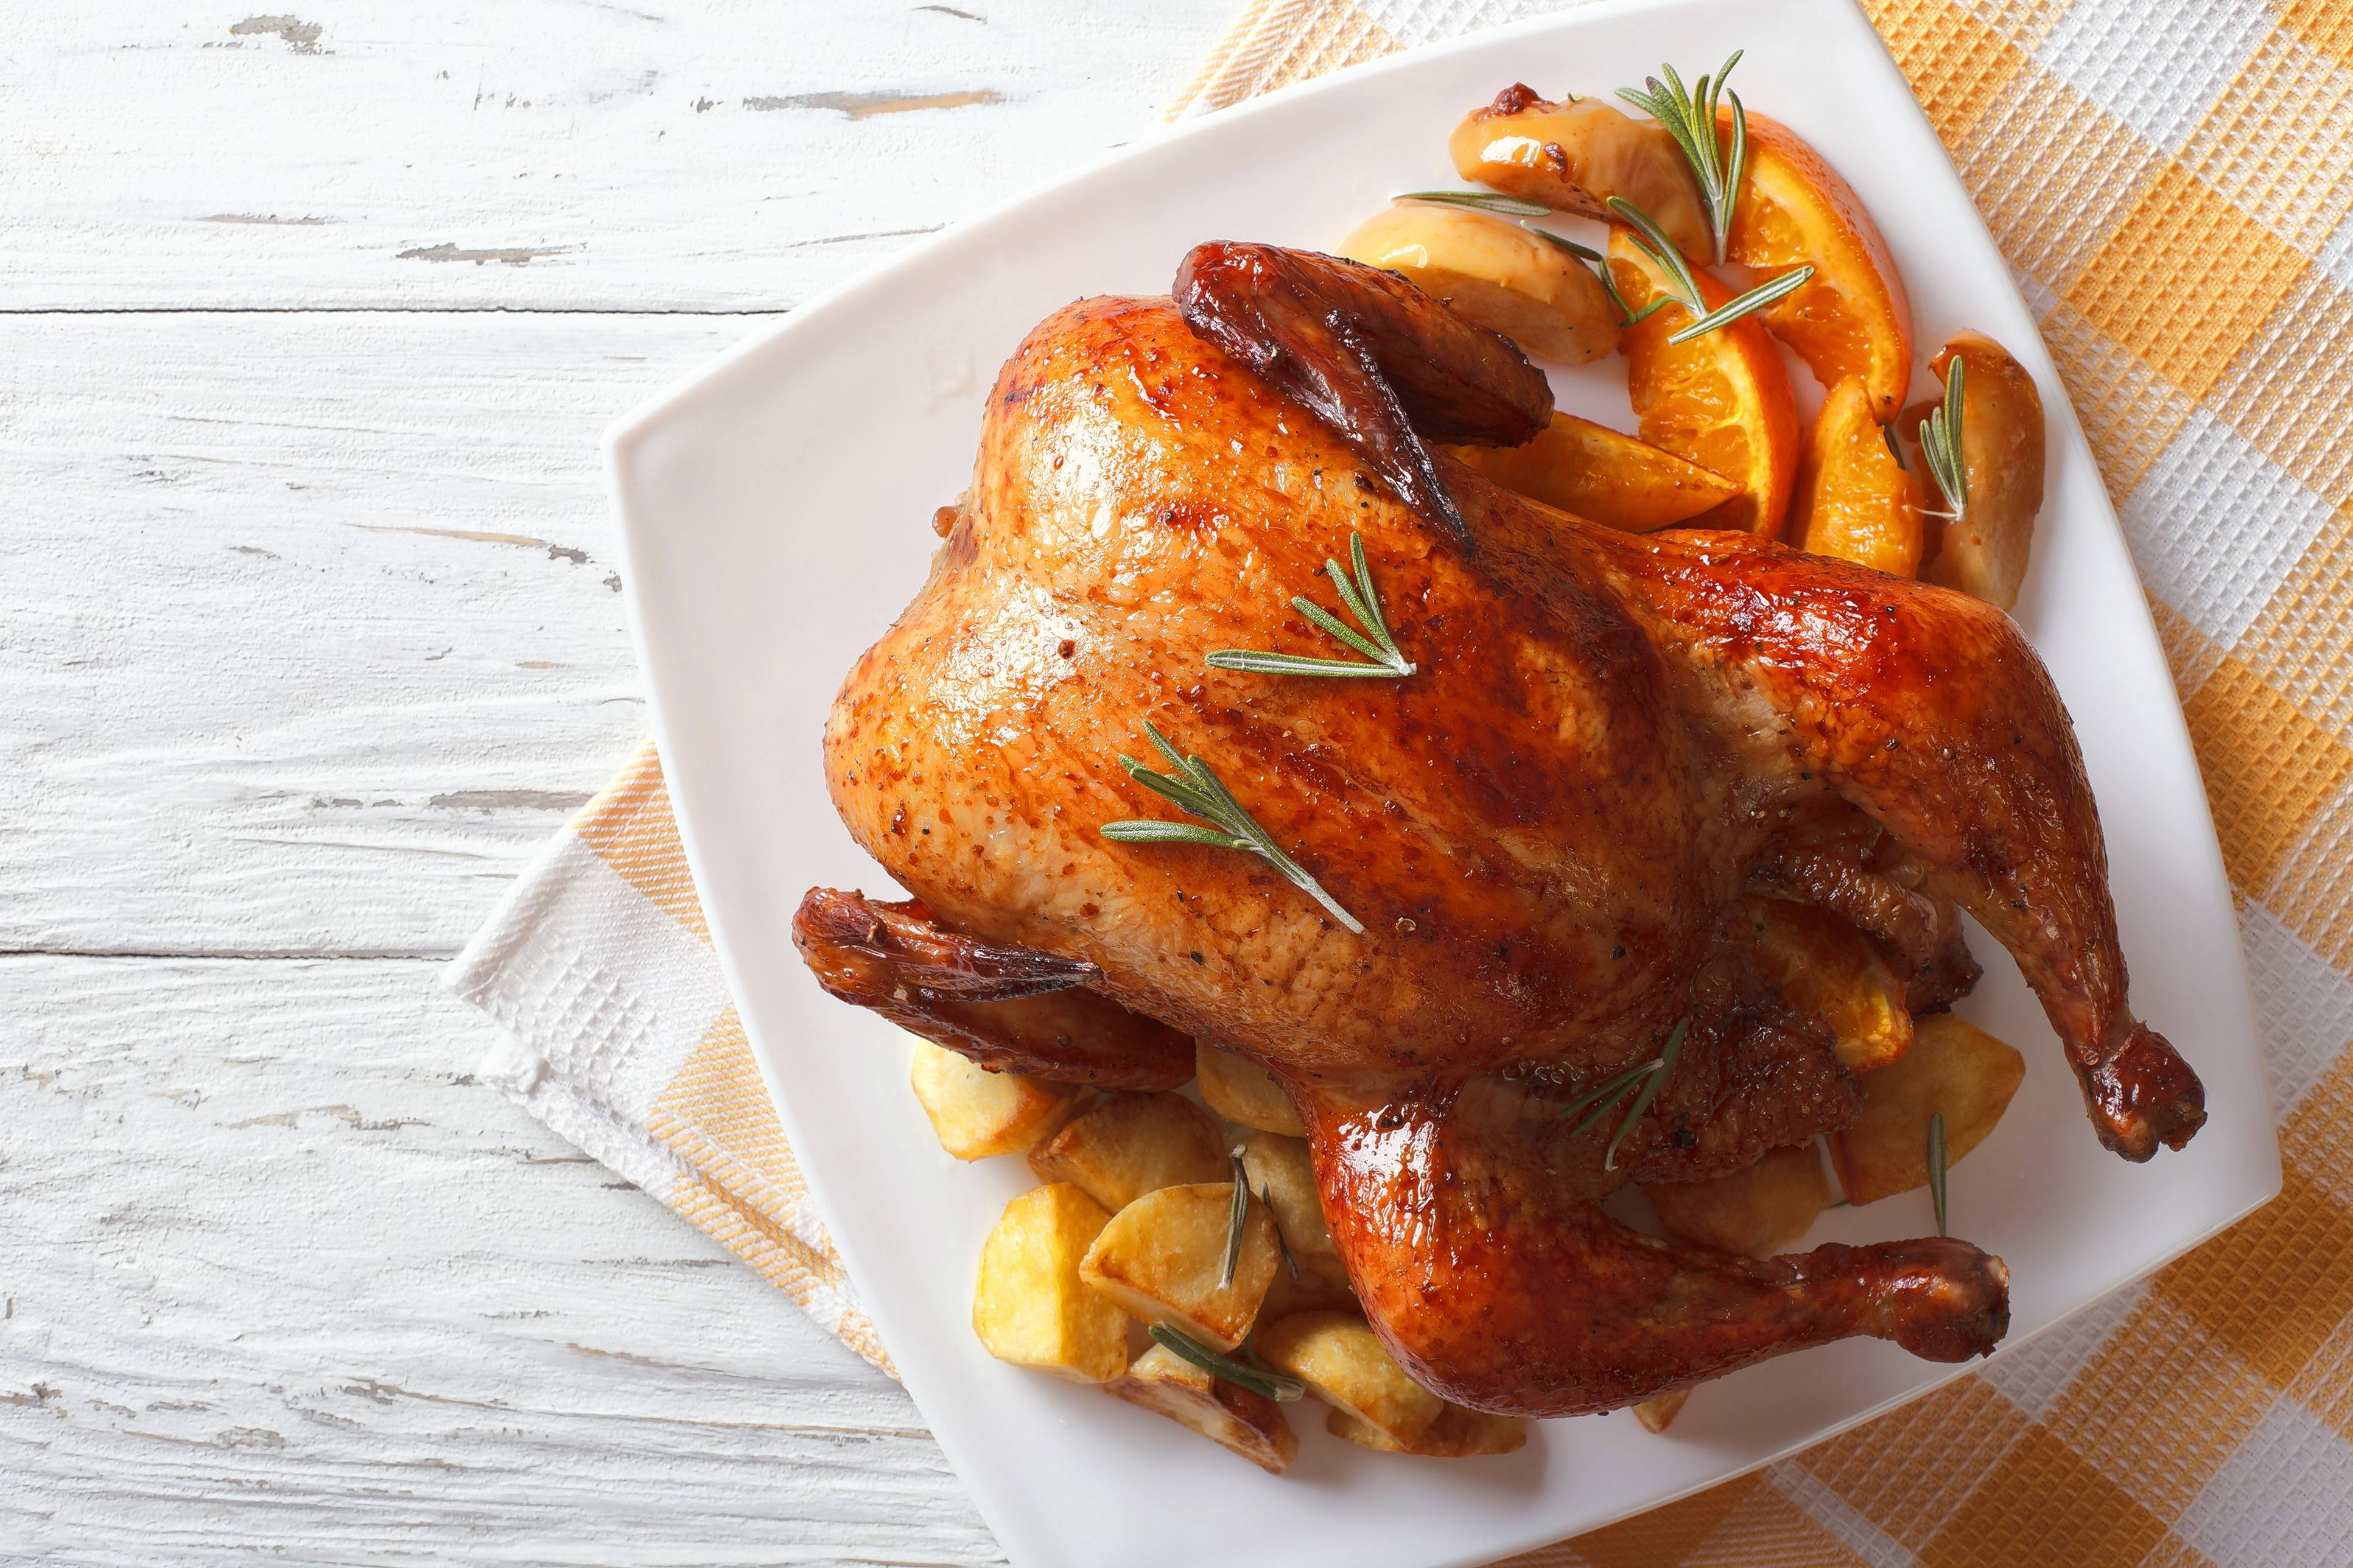 Thinkstock.comRoasted turkey is made more juicy and tender with a brine, says Don Mauer.